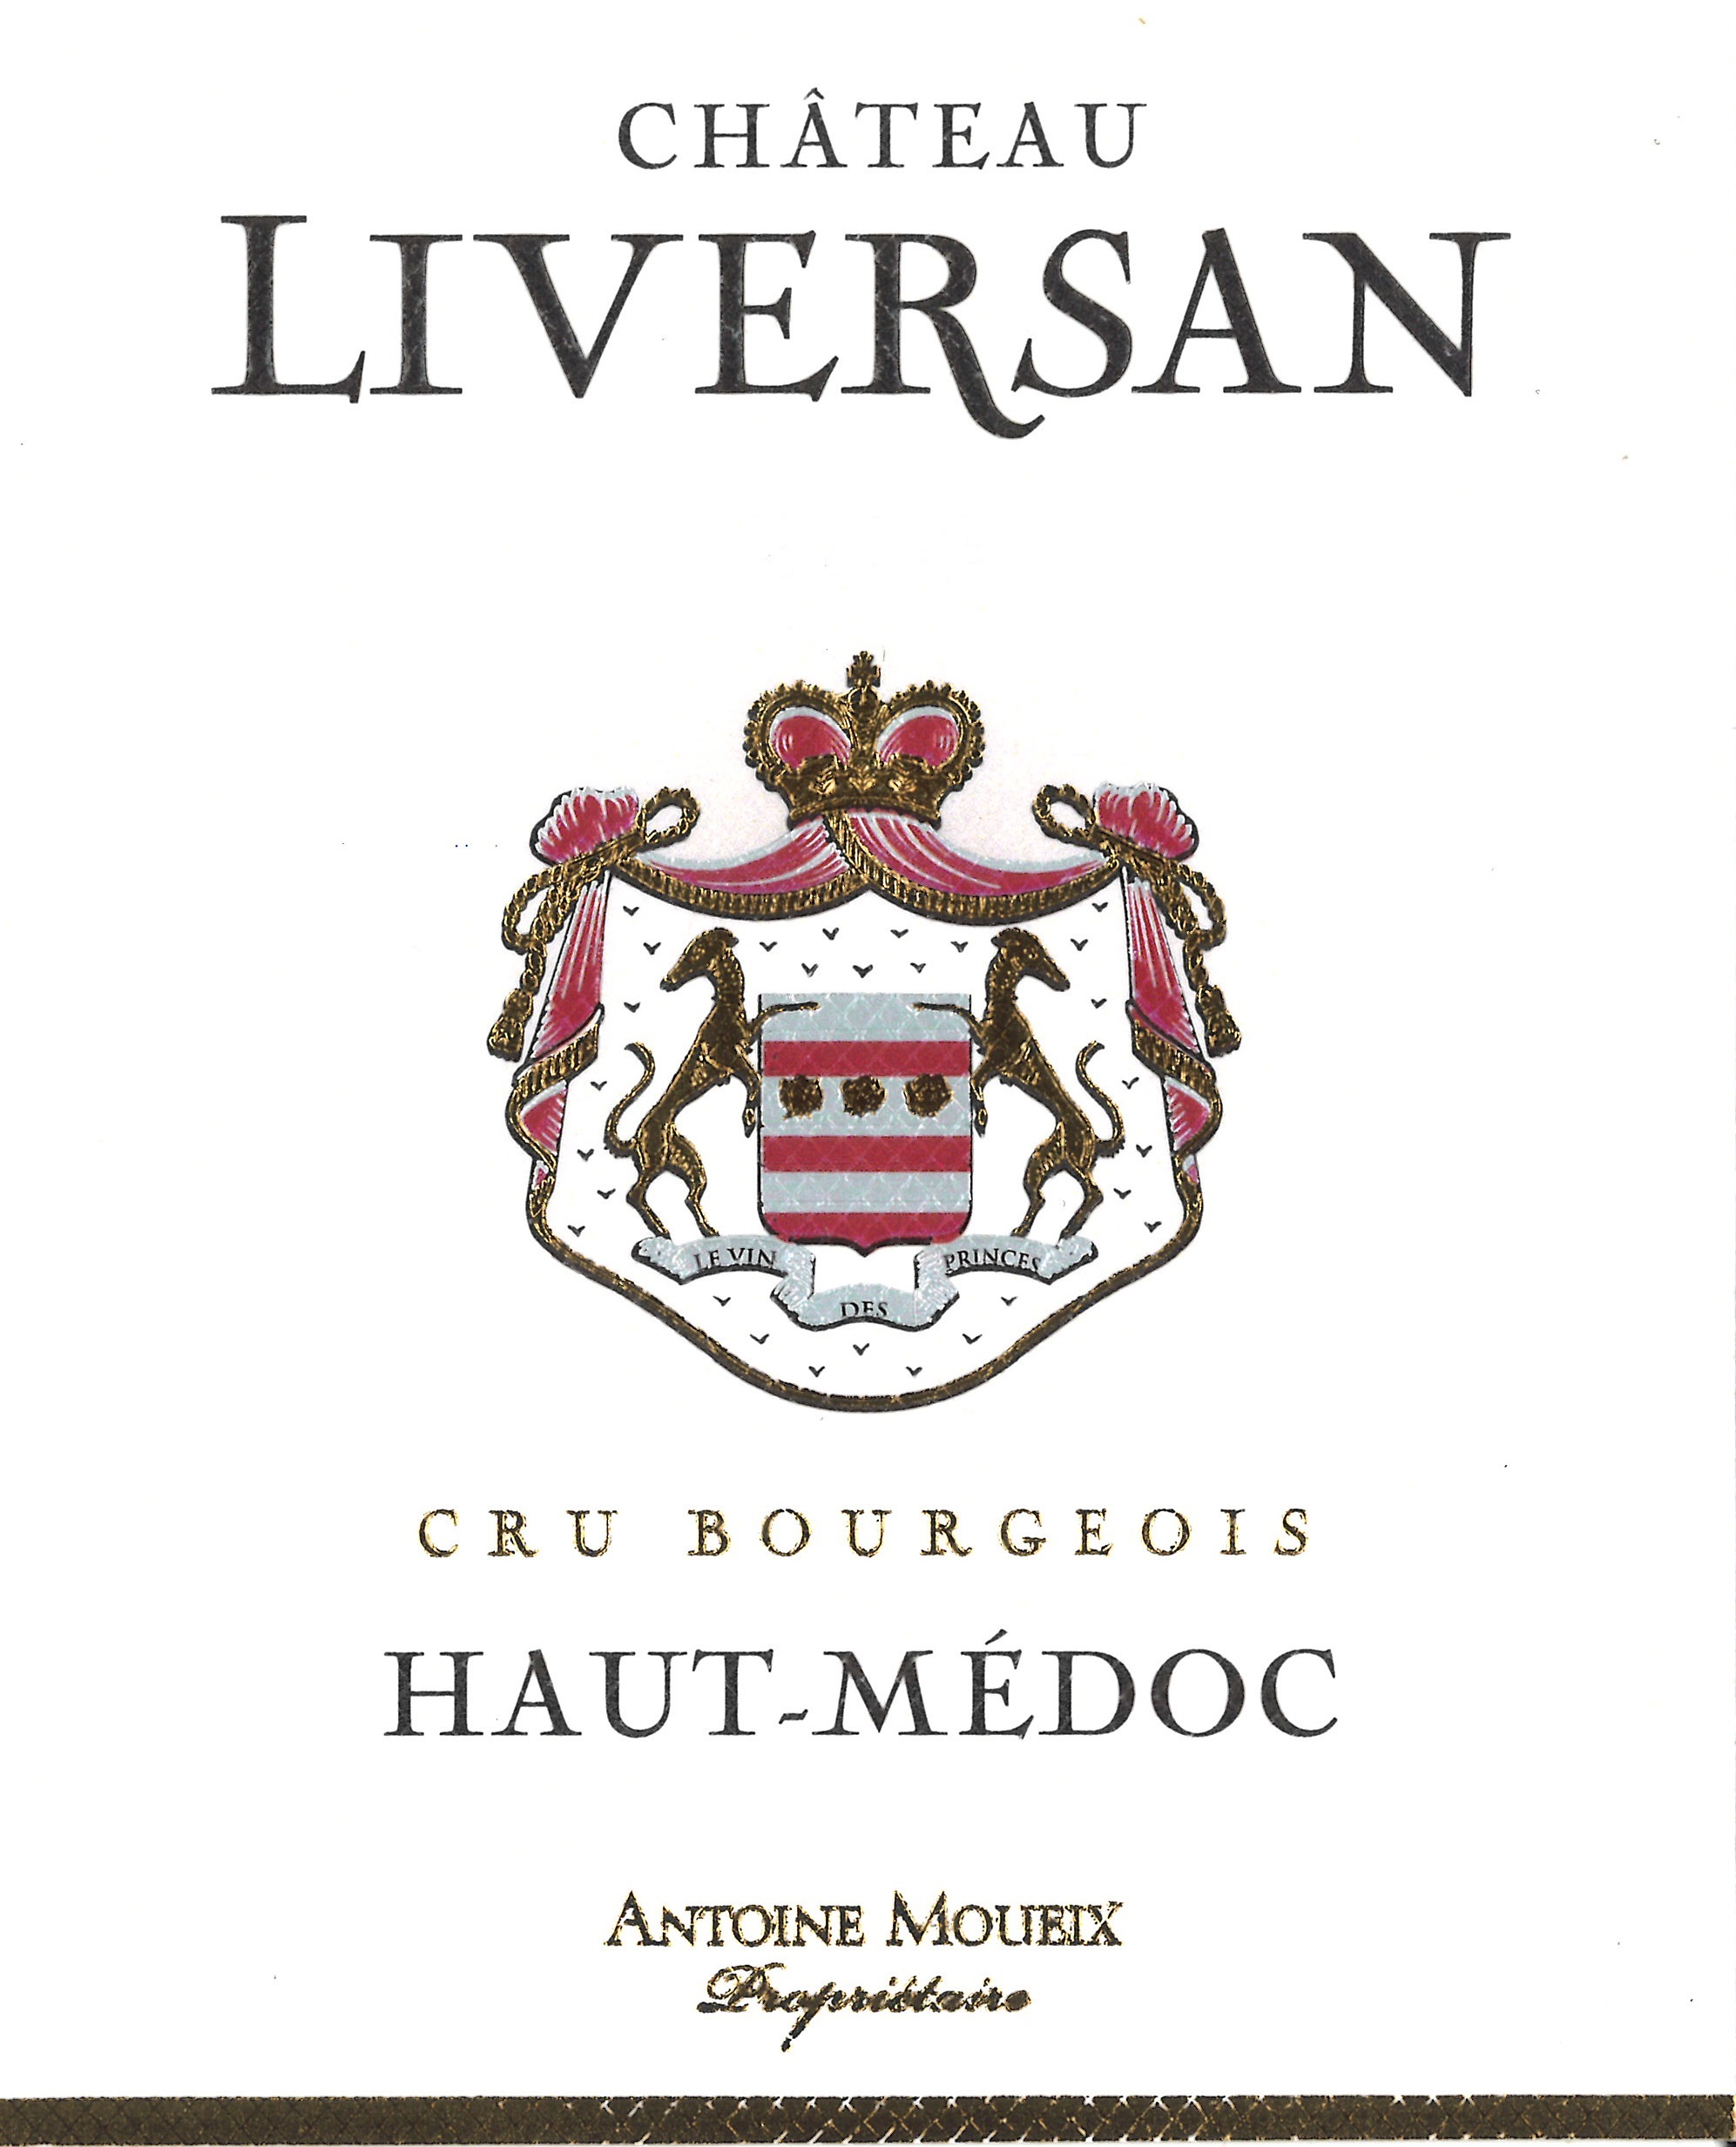 Our clients derenoncourtconsultants for Chateau liversan